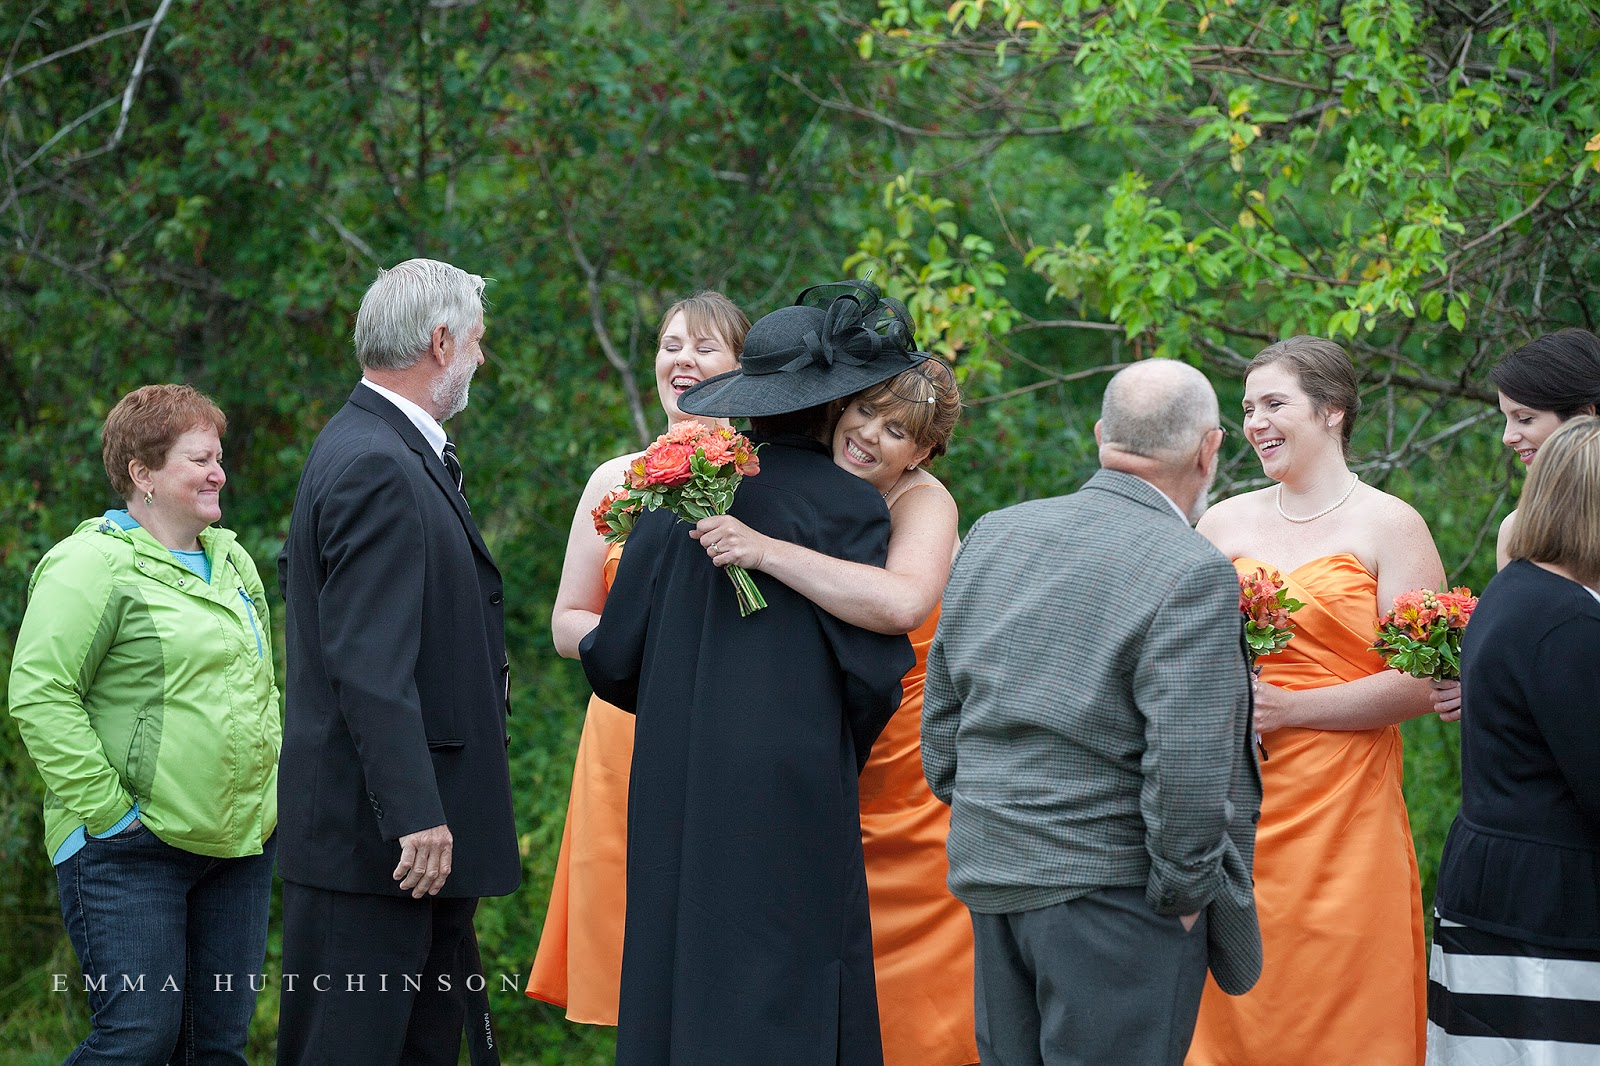 Weddings at Gorge Park in Grand Falls-Windsor - wedding photography by Emma Hutchinson